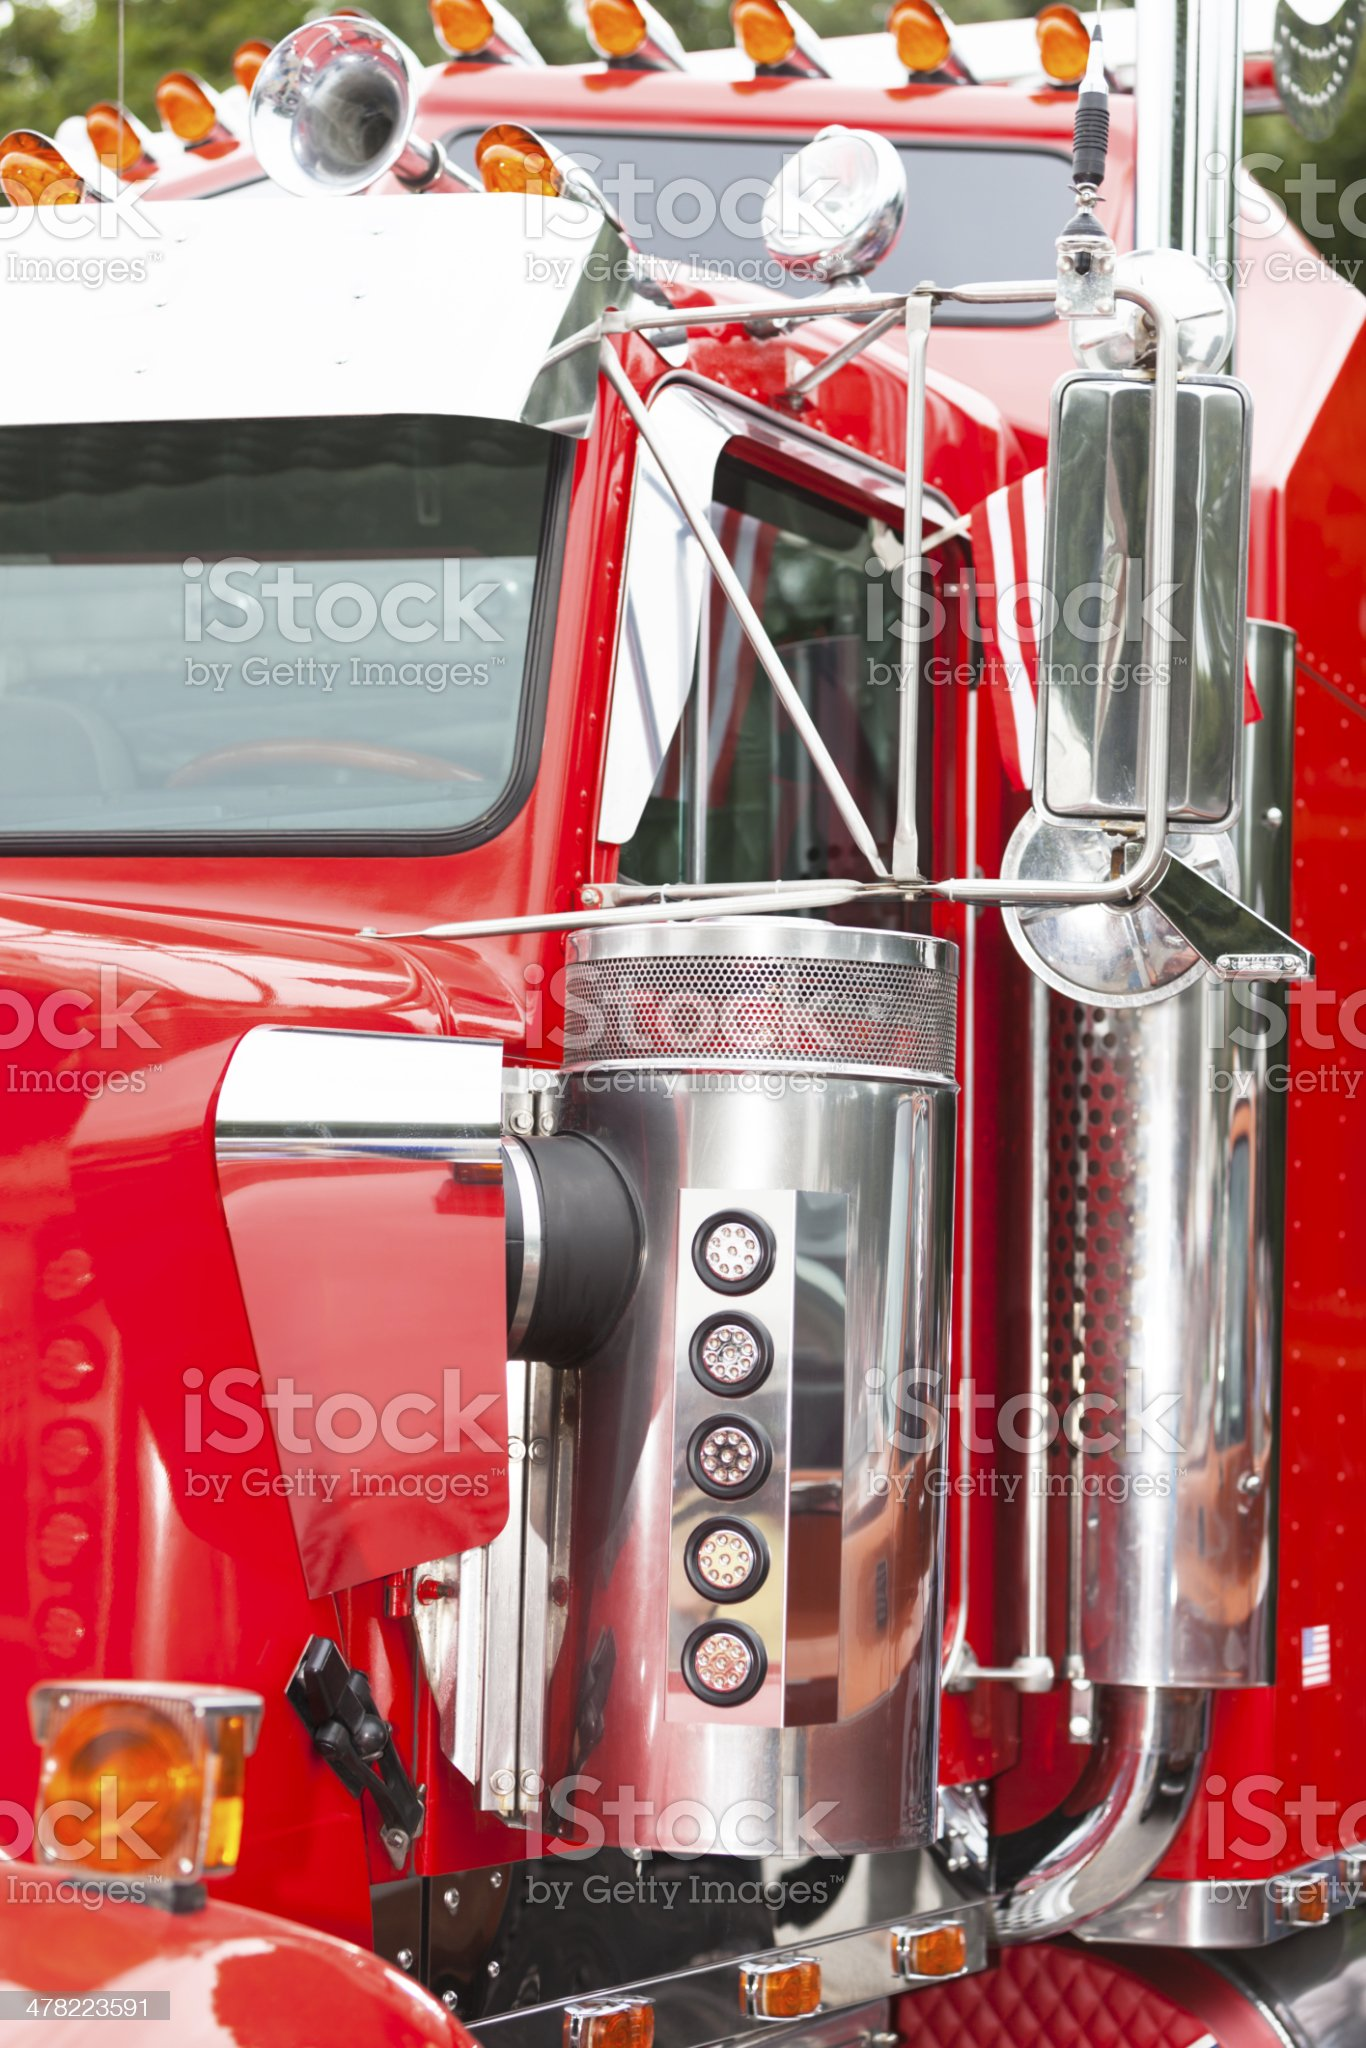 Red Semi Truck Close-Up royalty-free stock photo